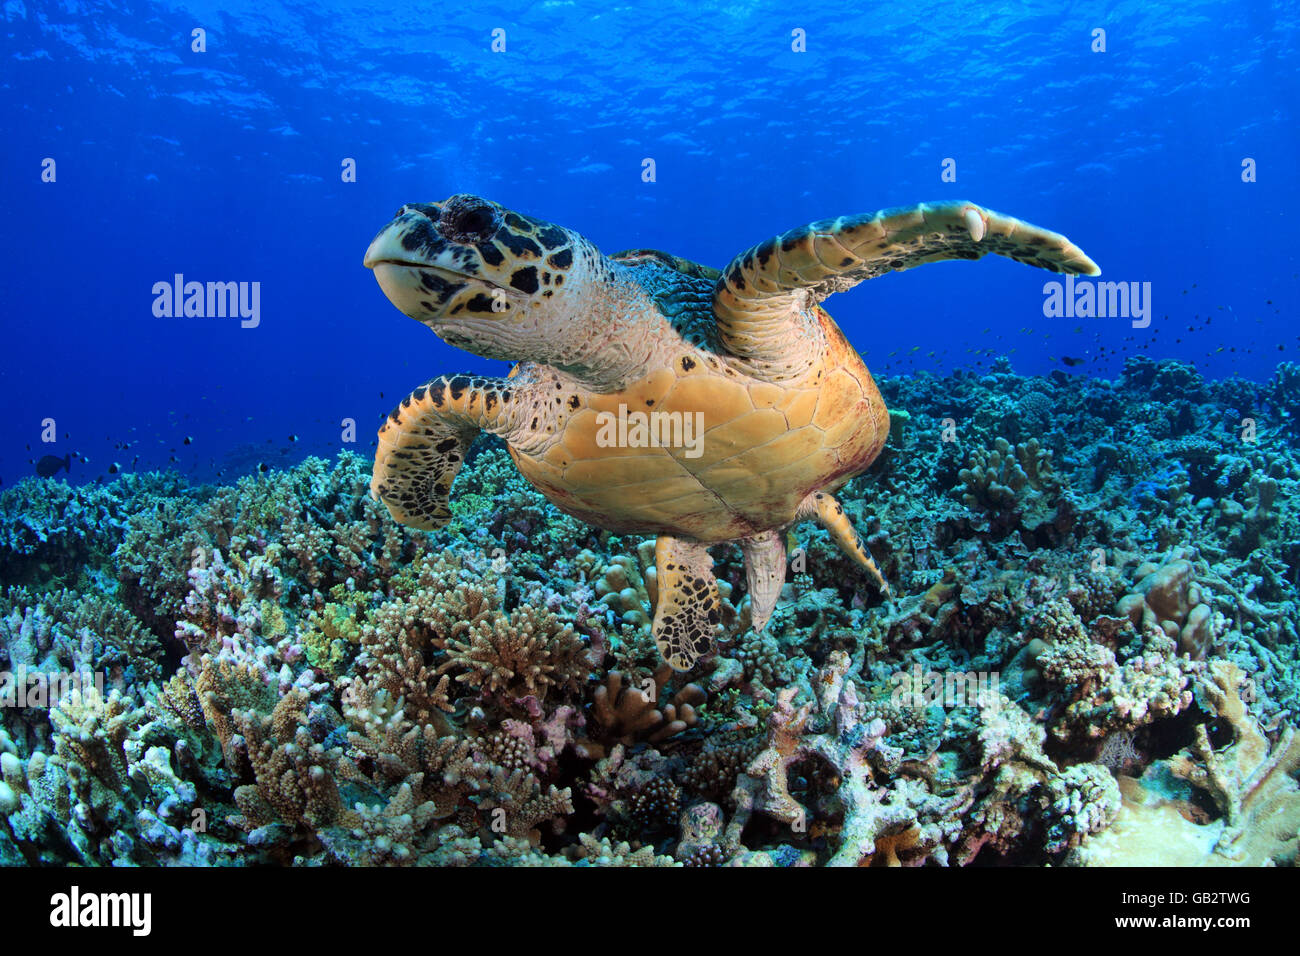 Hawksbill sea turtle in the blue water of the ocean - Stock Image